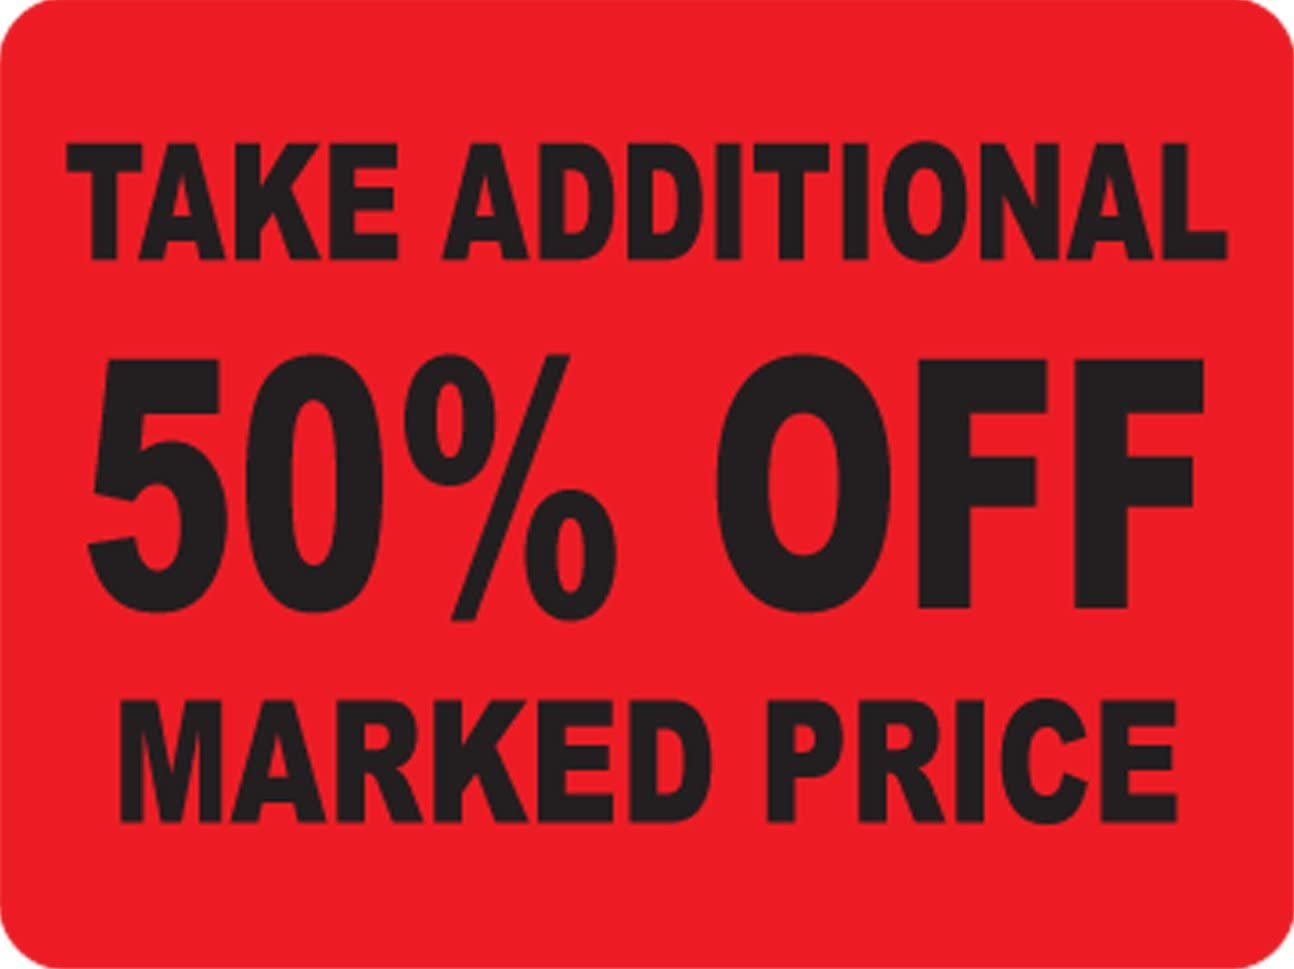 PromoTouch Compatible 5,000 Labels TAKE ADDITIONAL 40/% OFF MARKED PRICE Labels